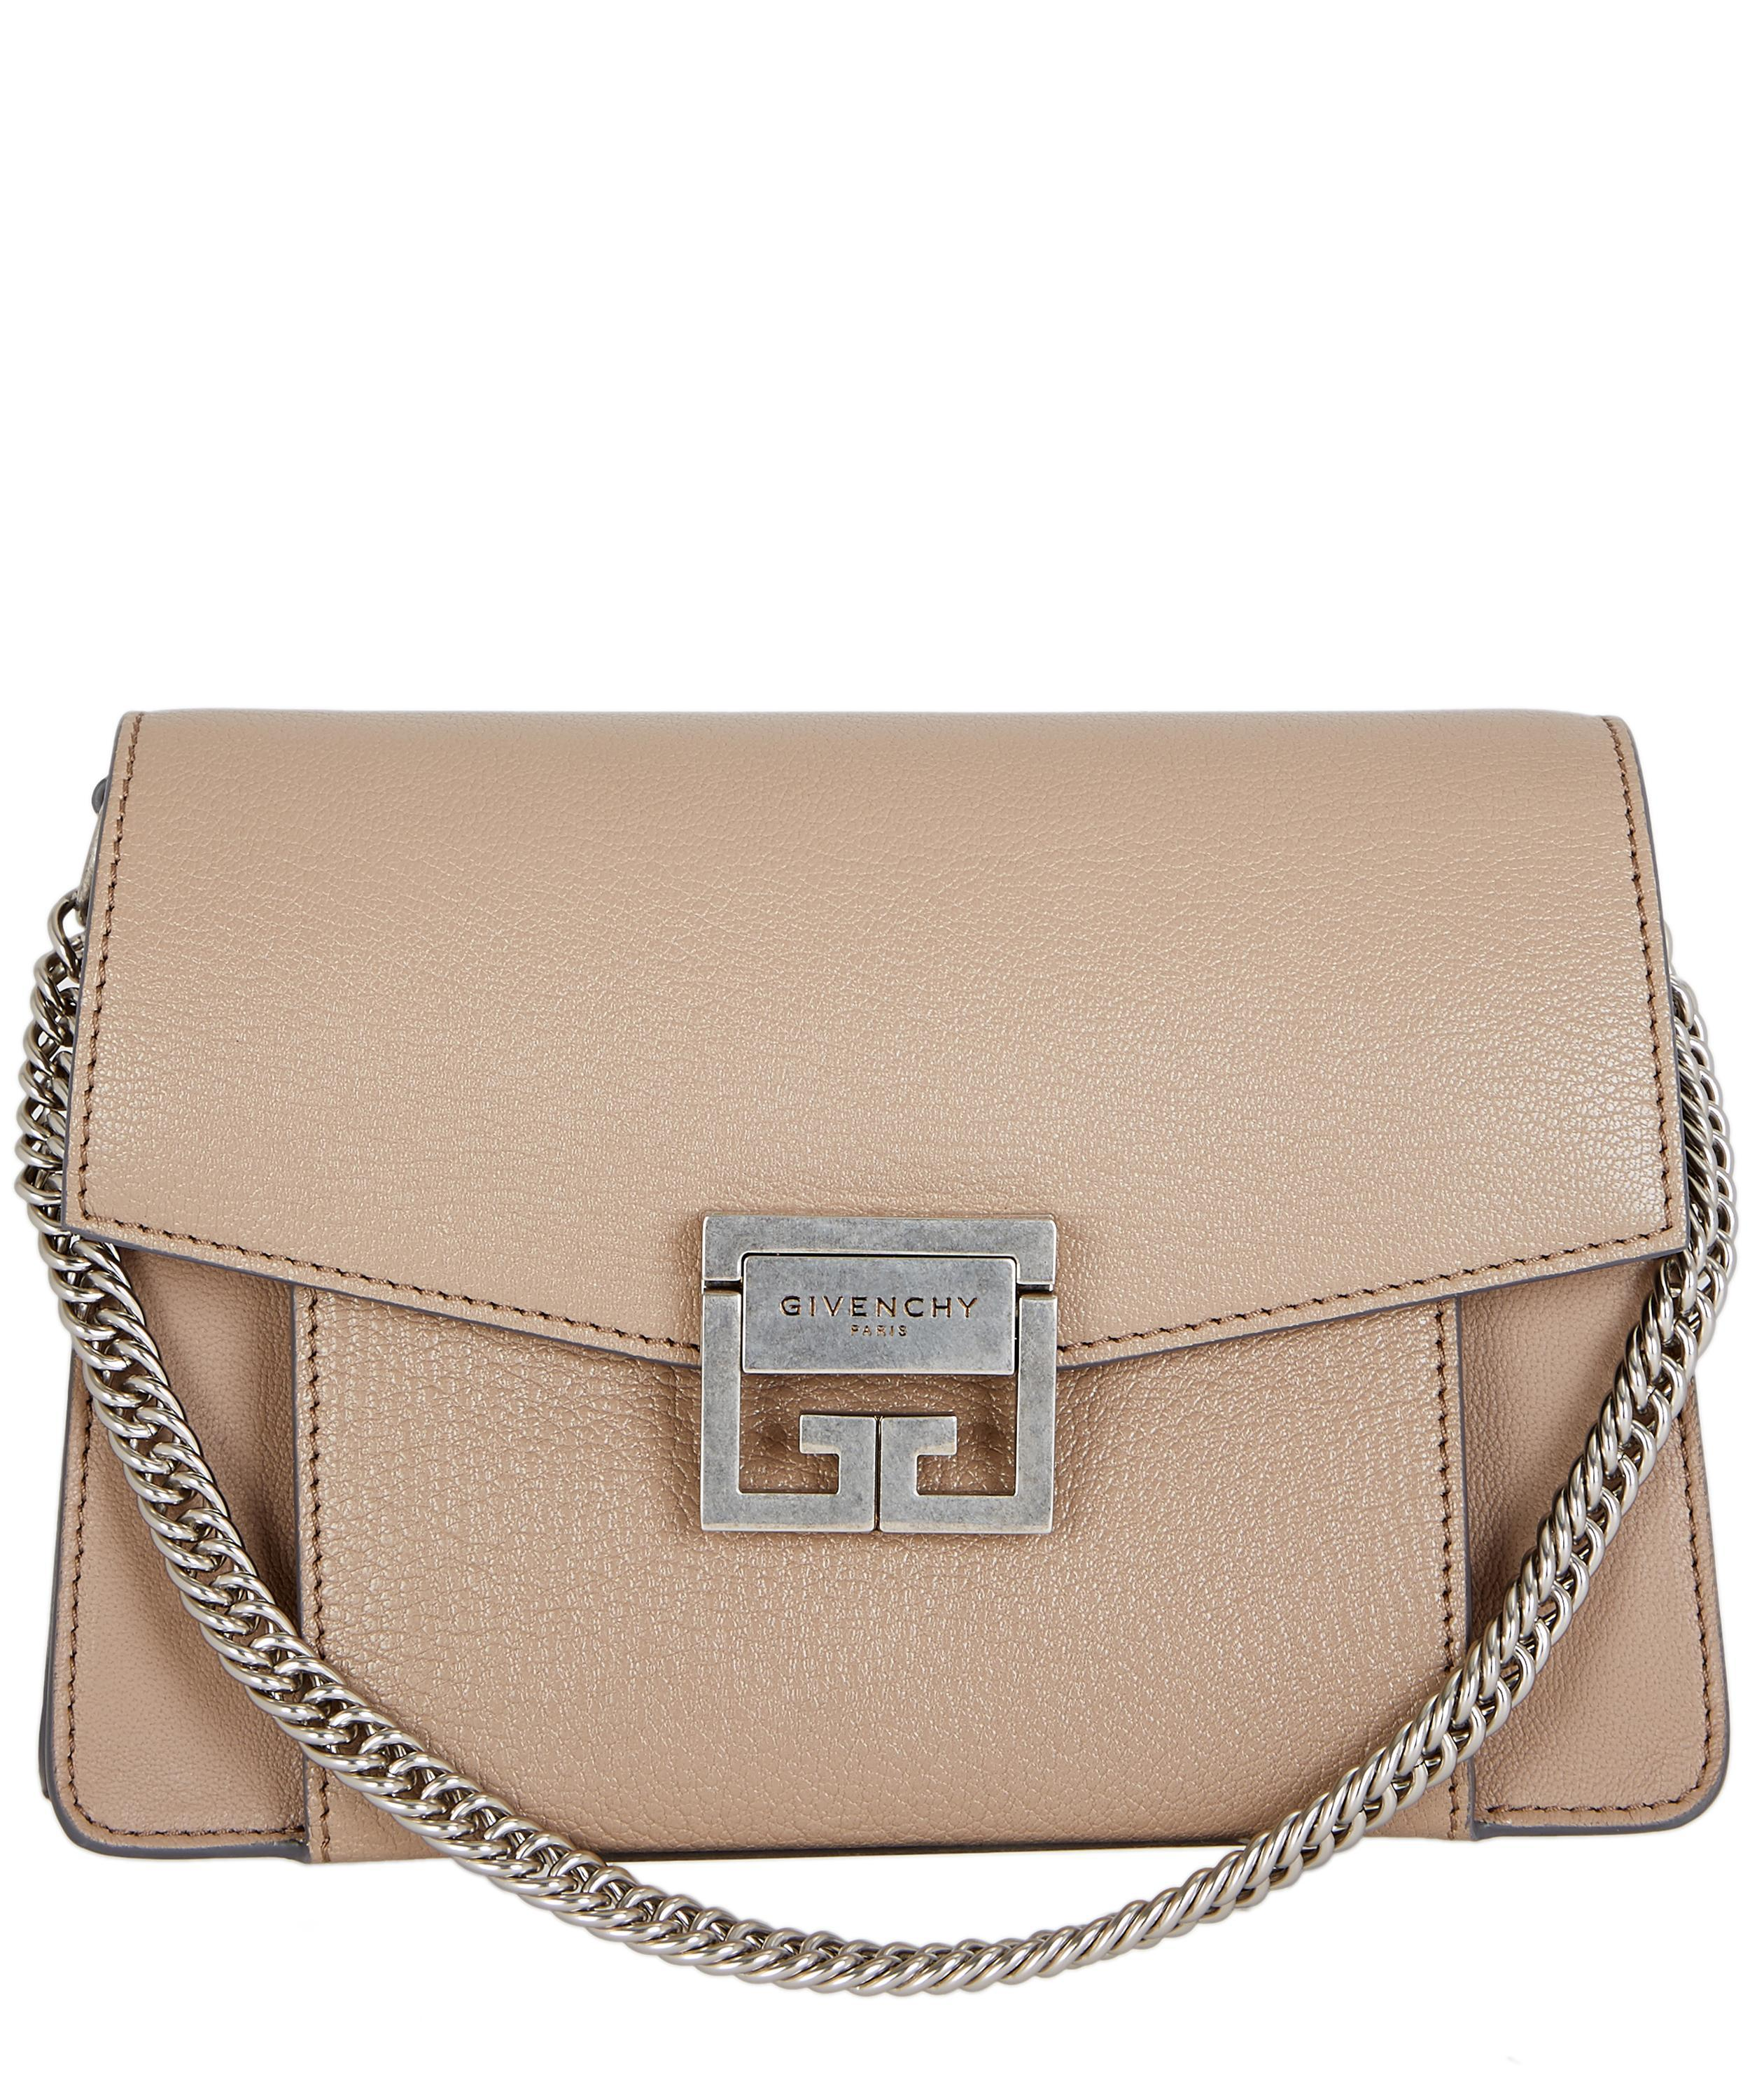 21f18fd8ea Givenchy Small Gv3 Goat Leather Cross-body Bag in Natural - Lyst